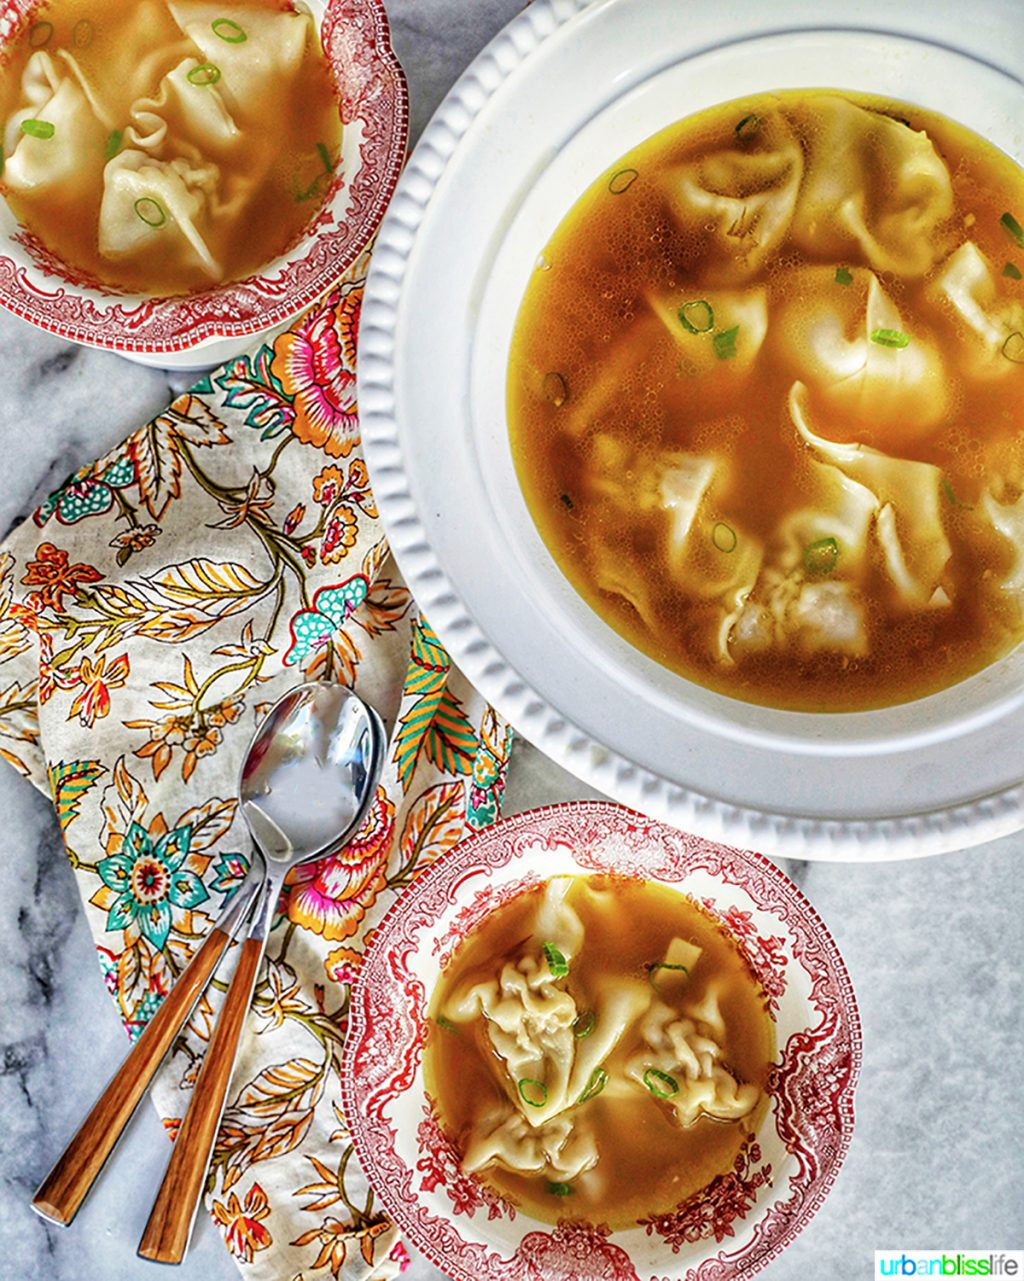 wonton noodle soup in bowls with spoons